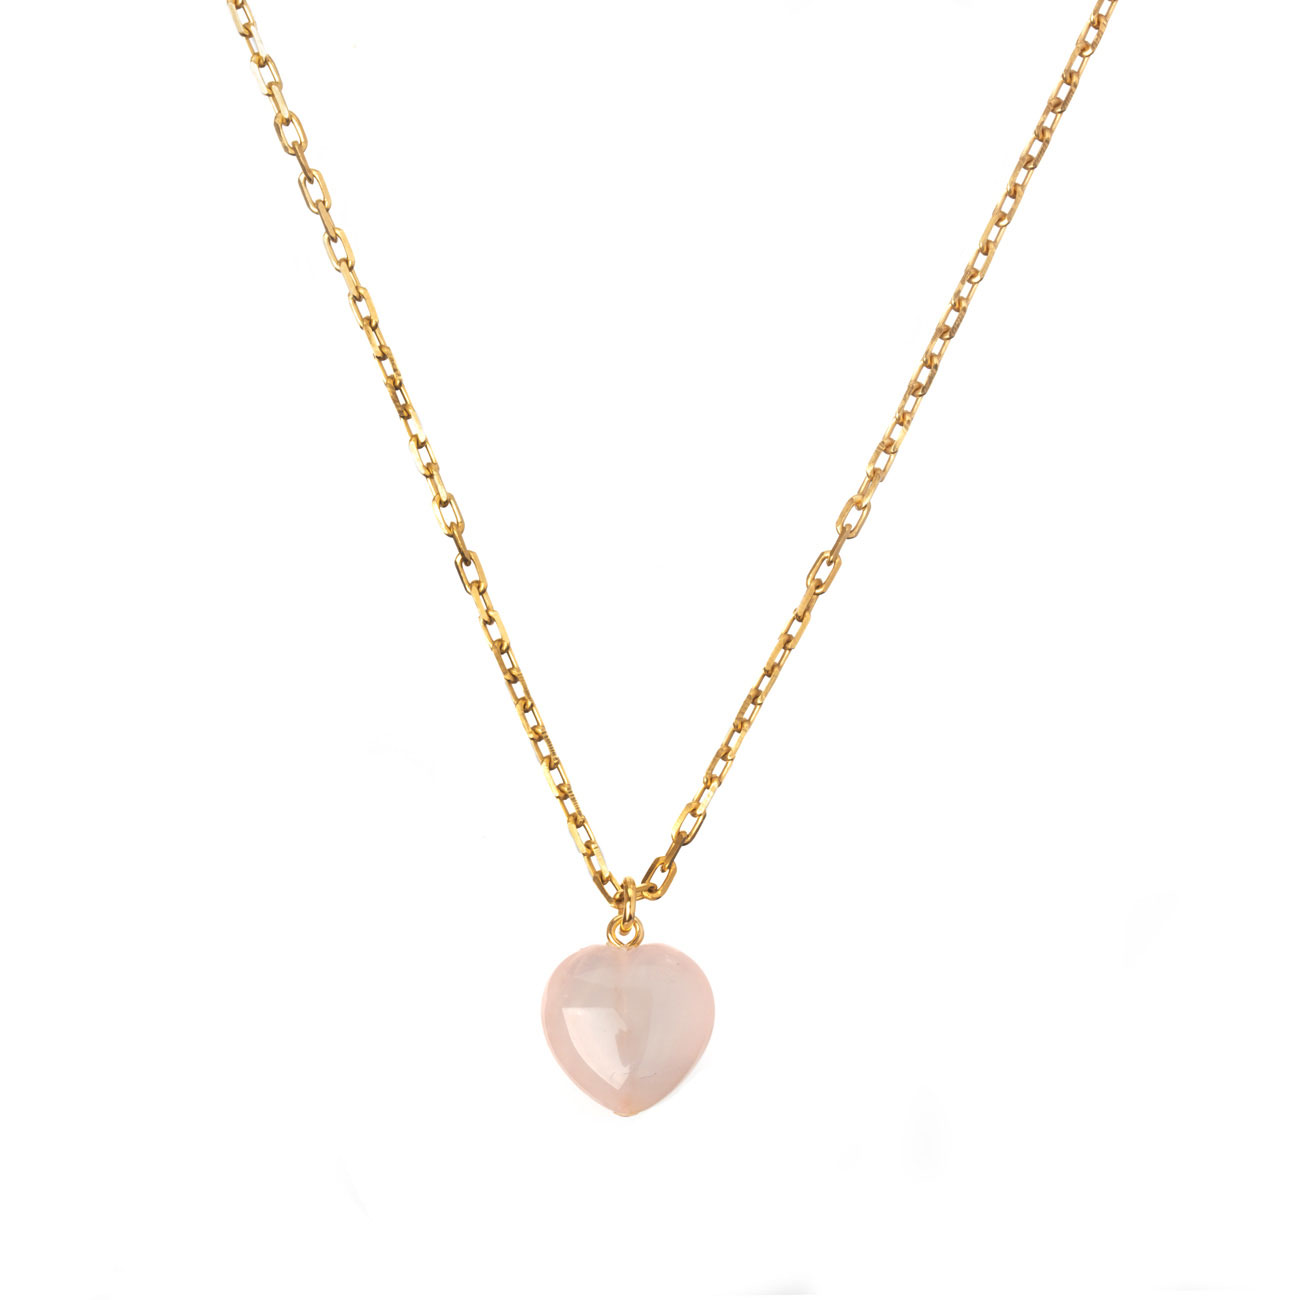 GUILTY PLEASURES BIG GOLD HEART NECKLACE